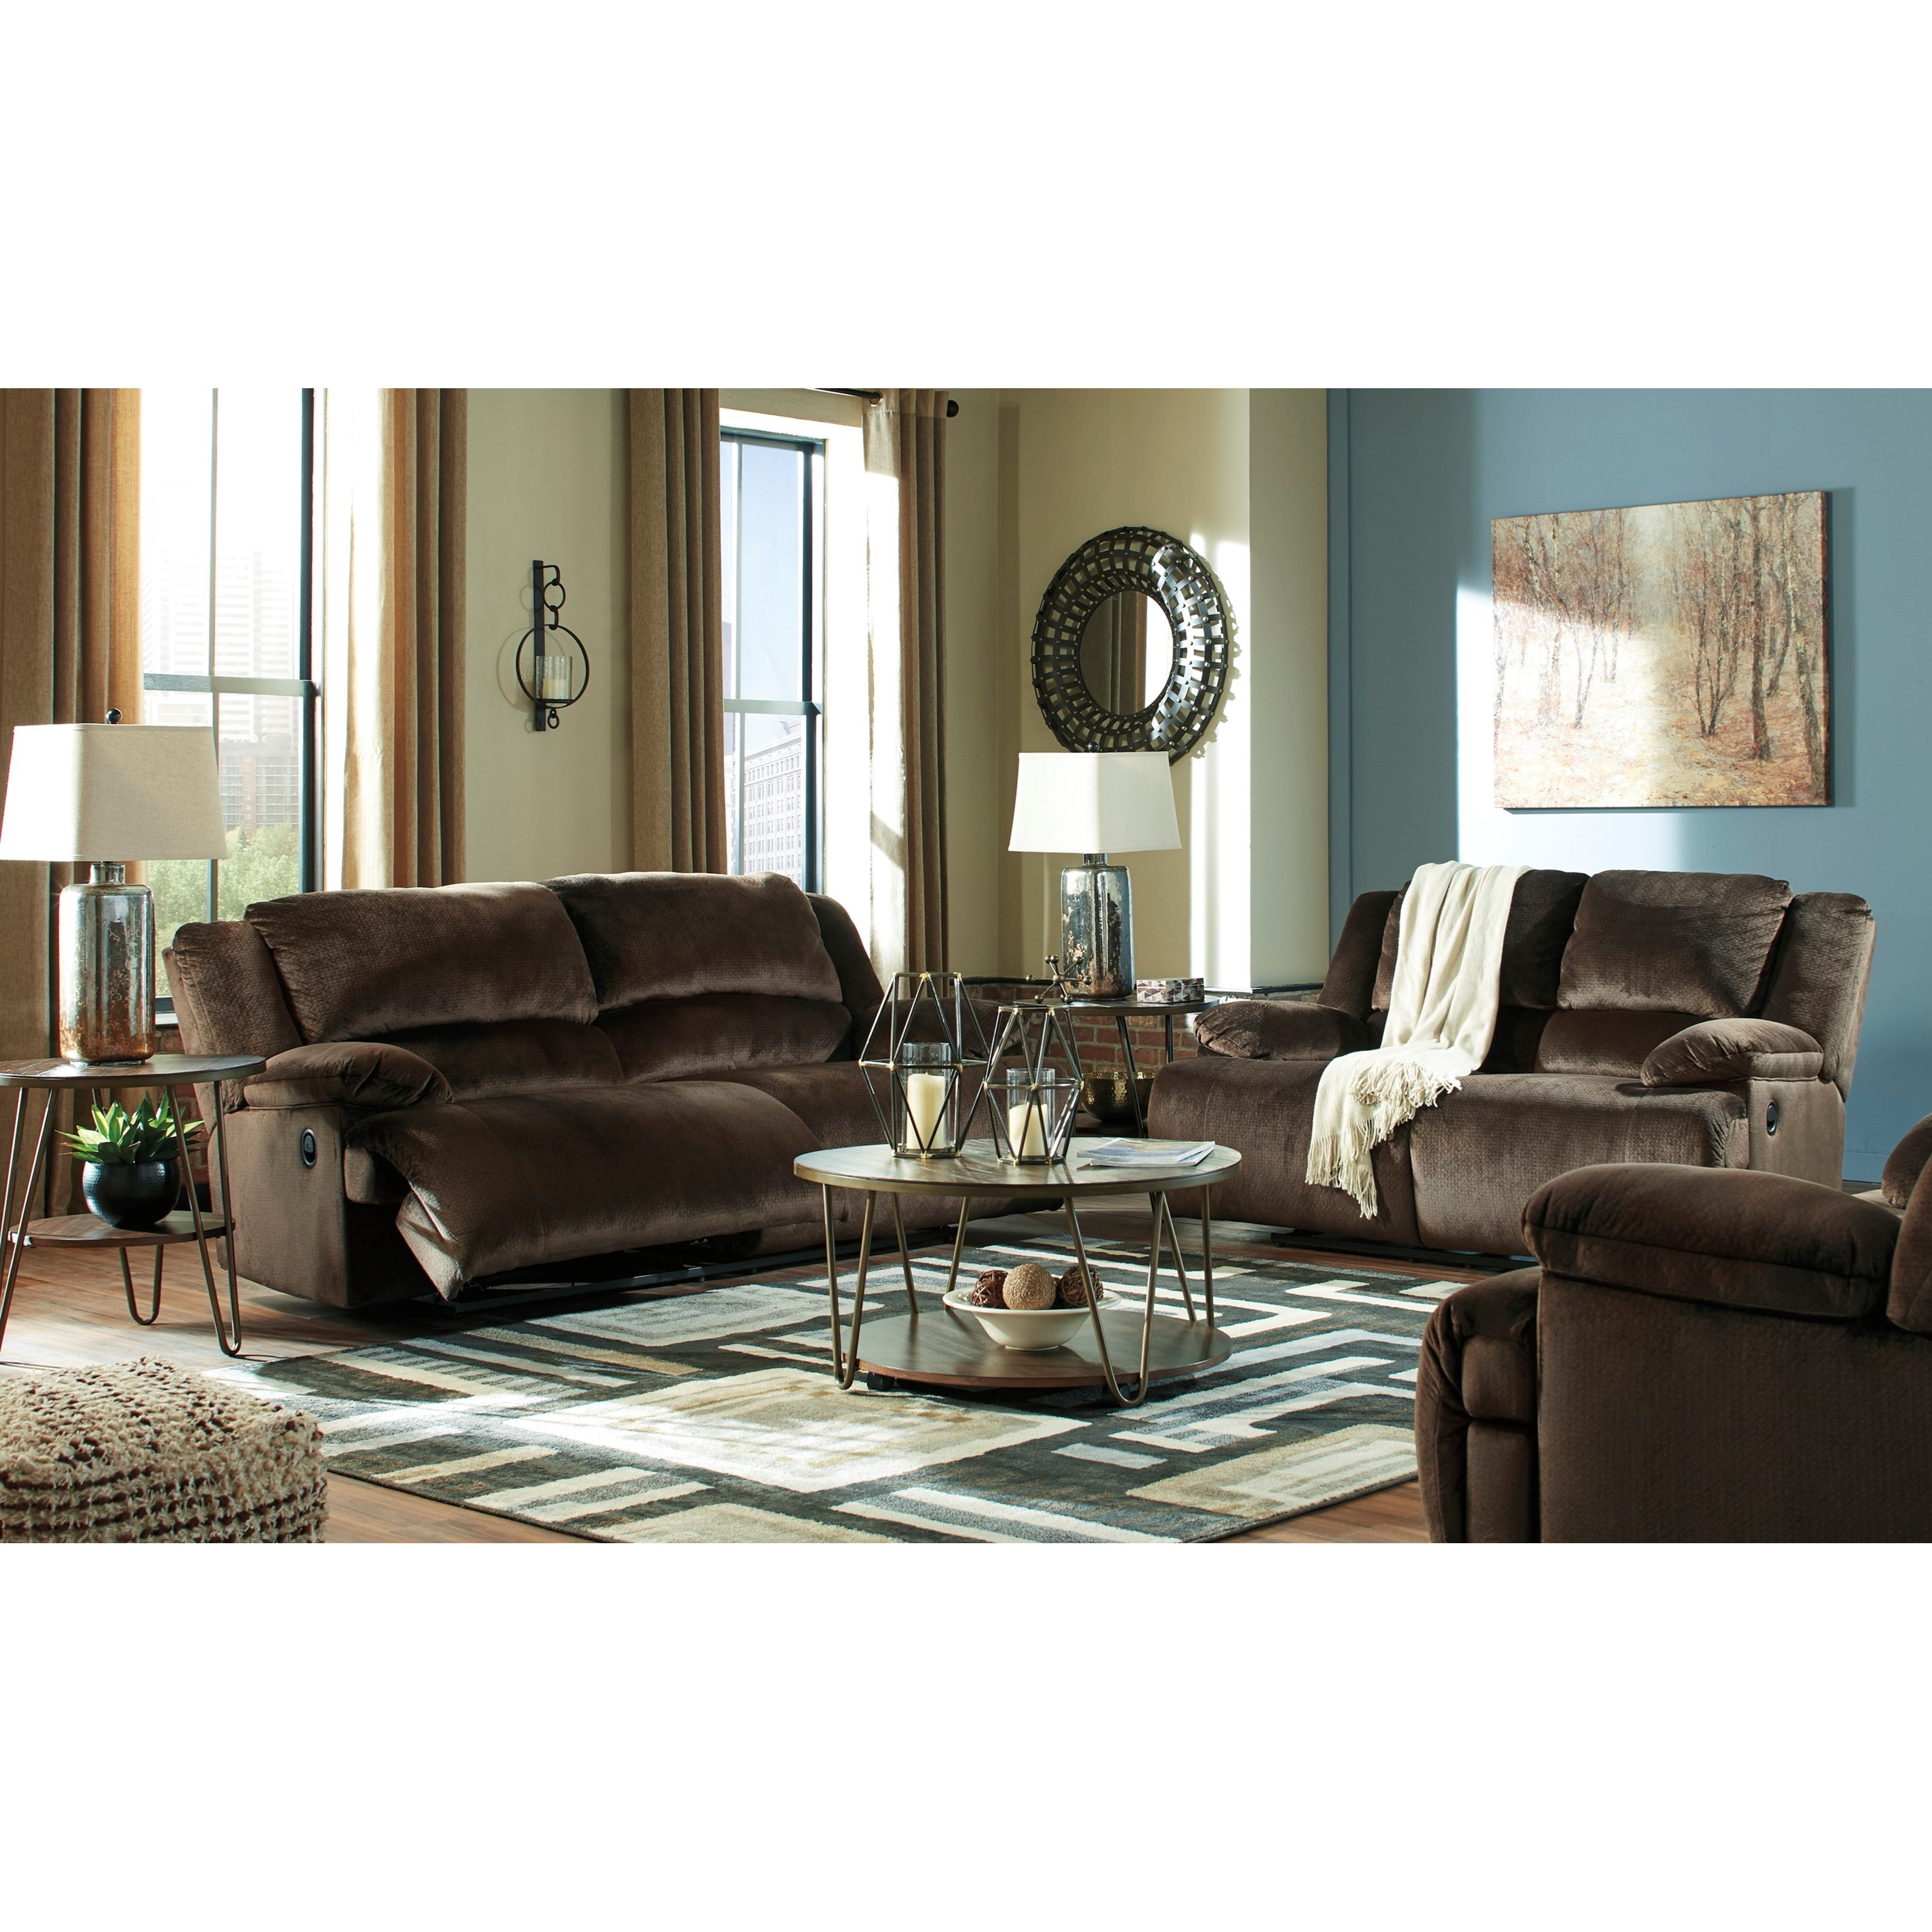 Clonmel Power Reclining Living Room Group by Signature Design by Ashley at Zak's Warehouse Clearance Center